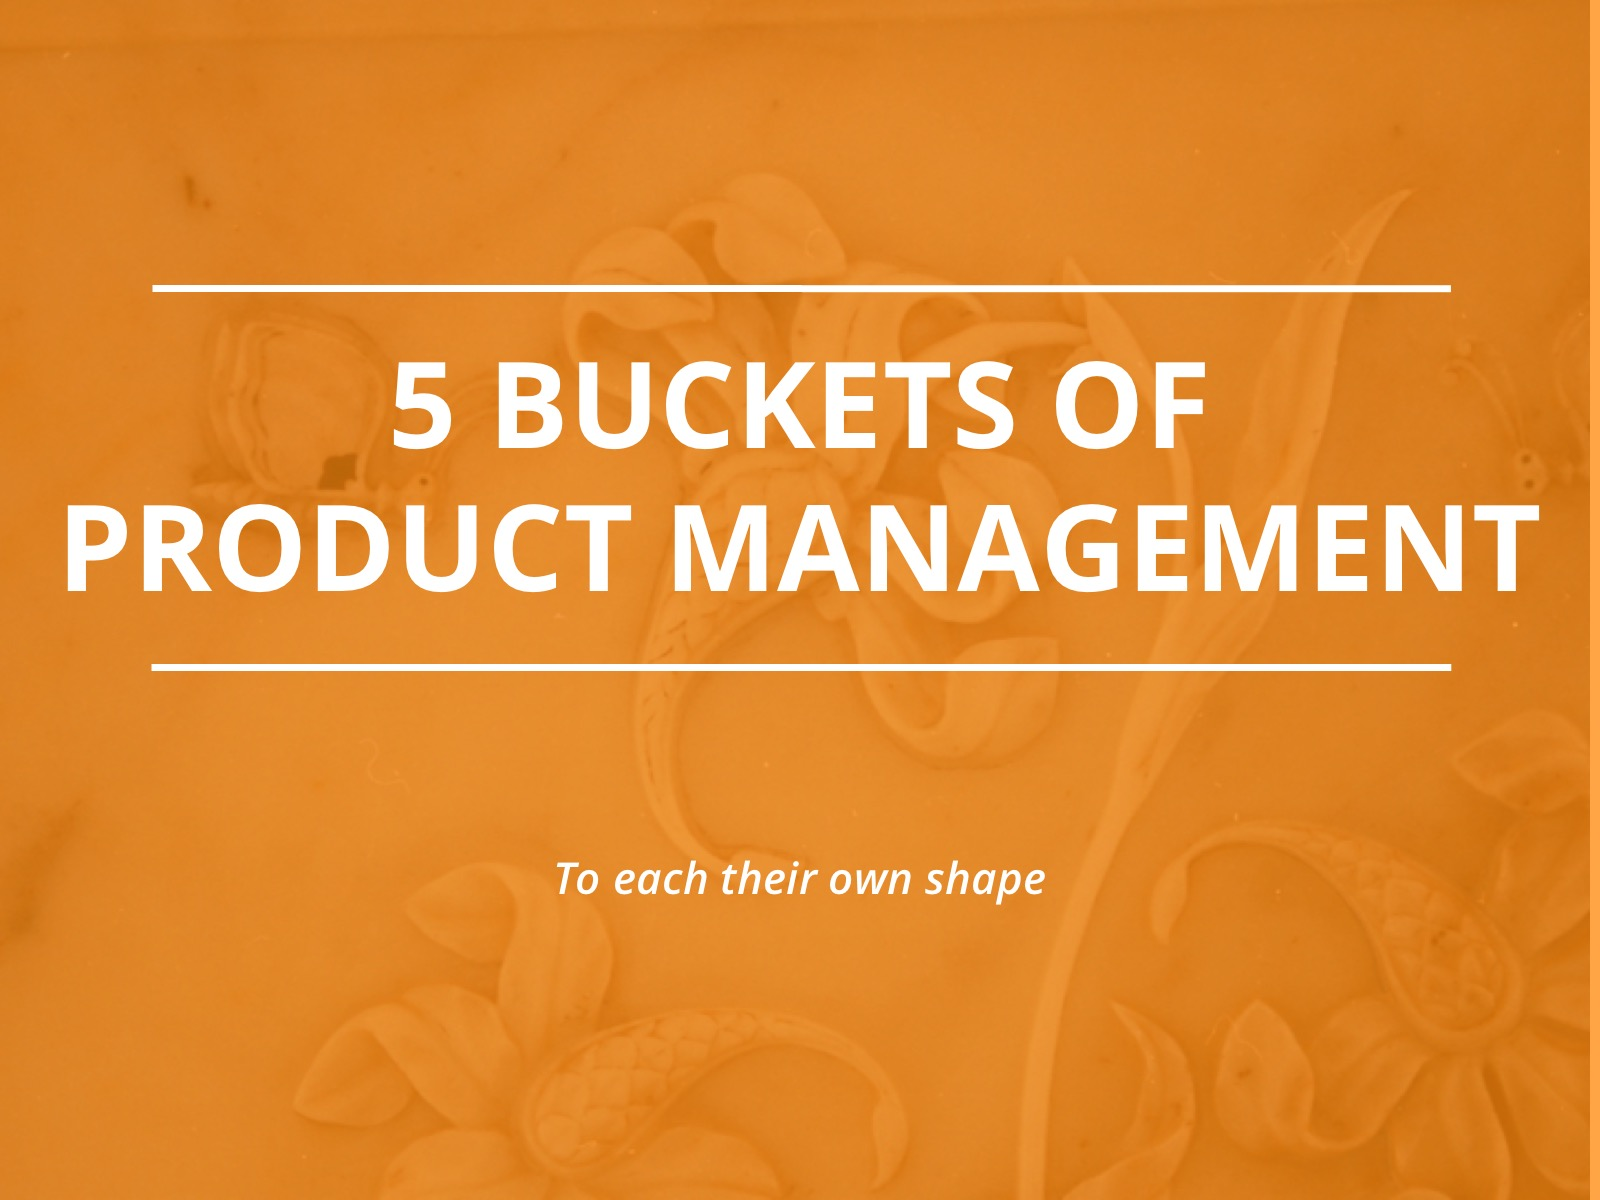 5-buckets-of-product-management